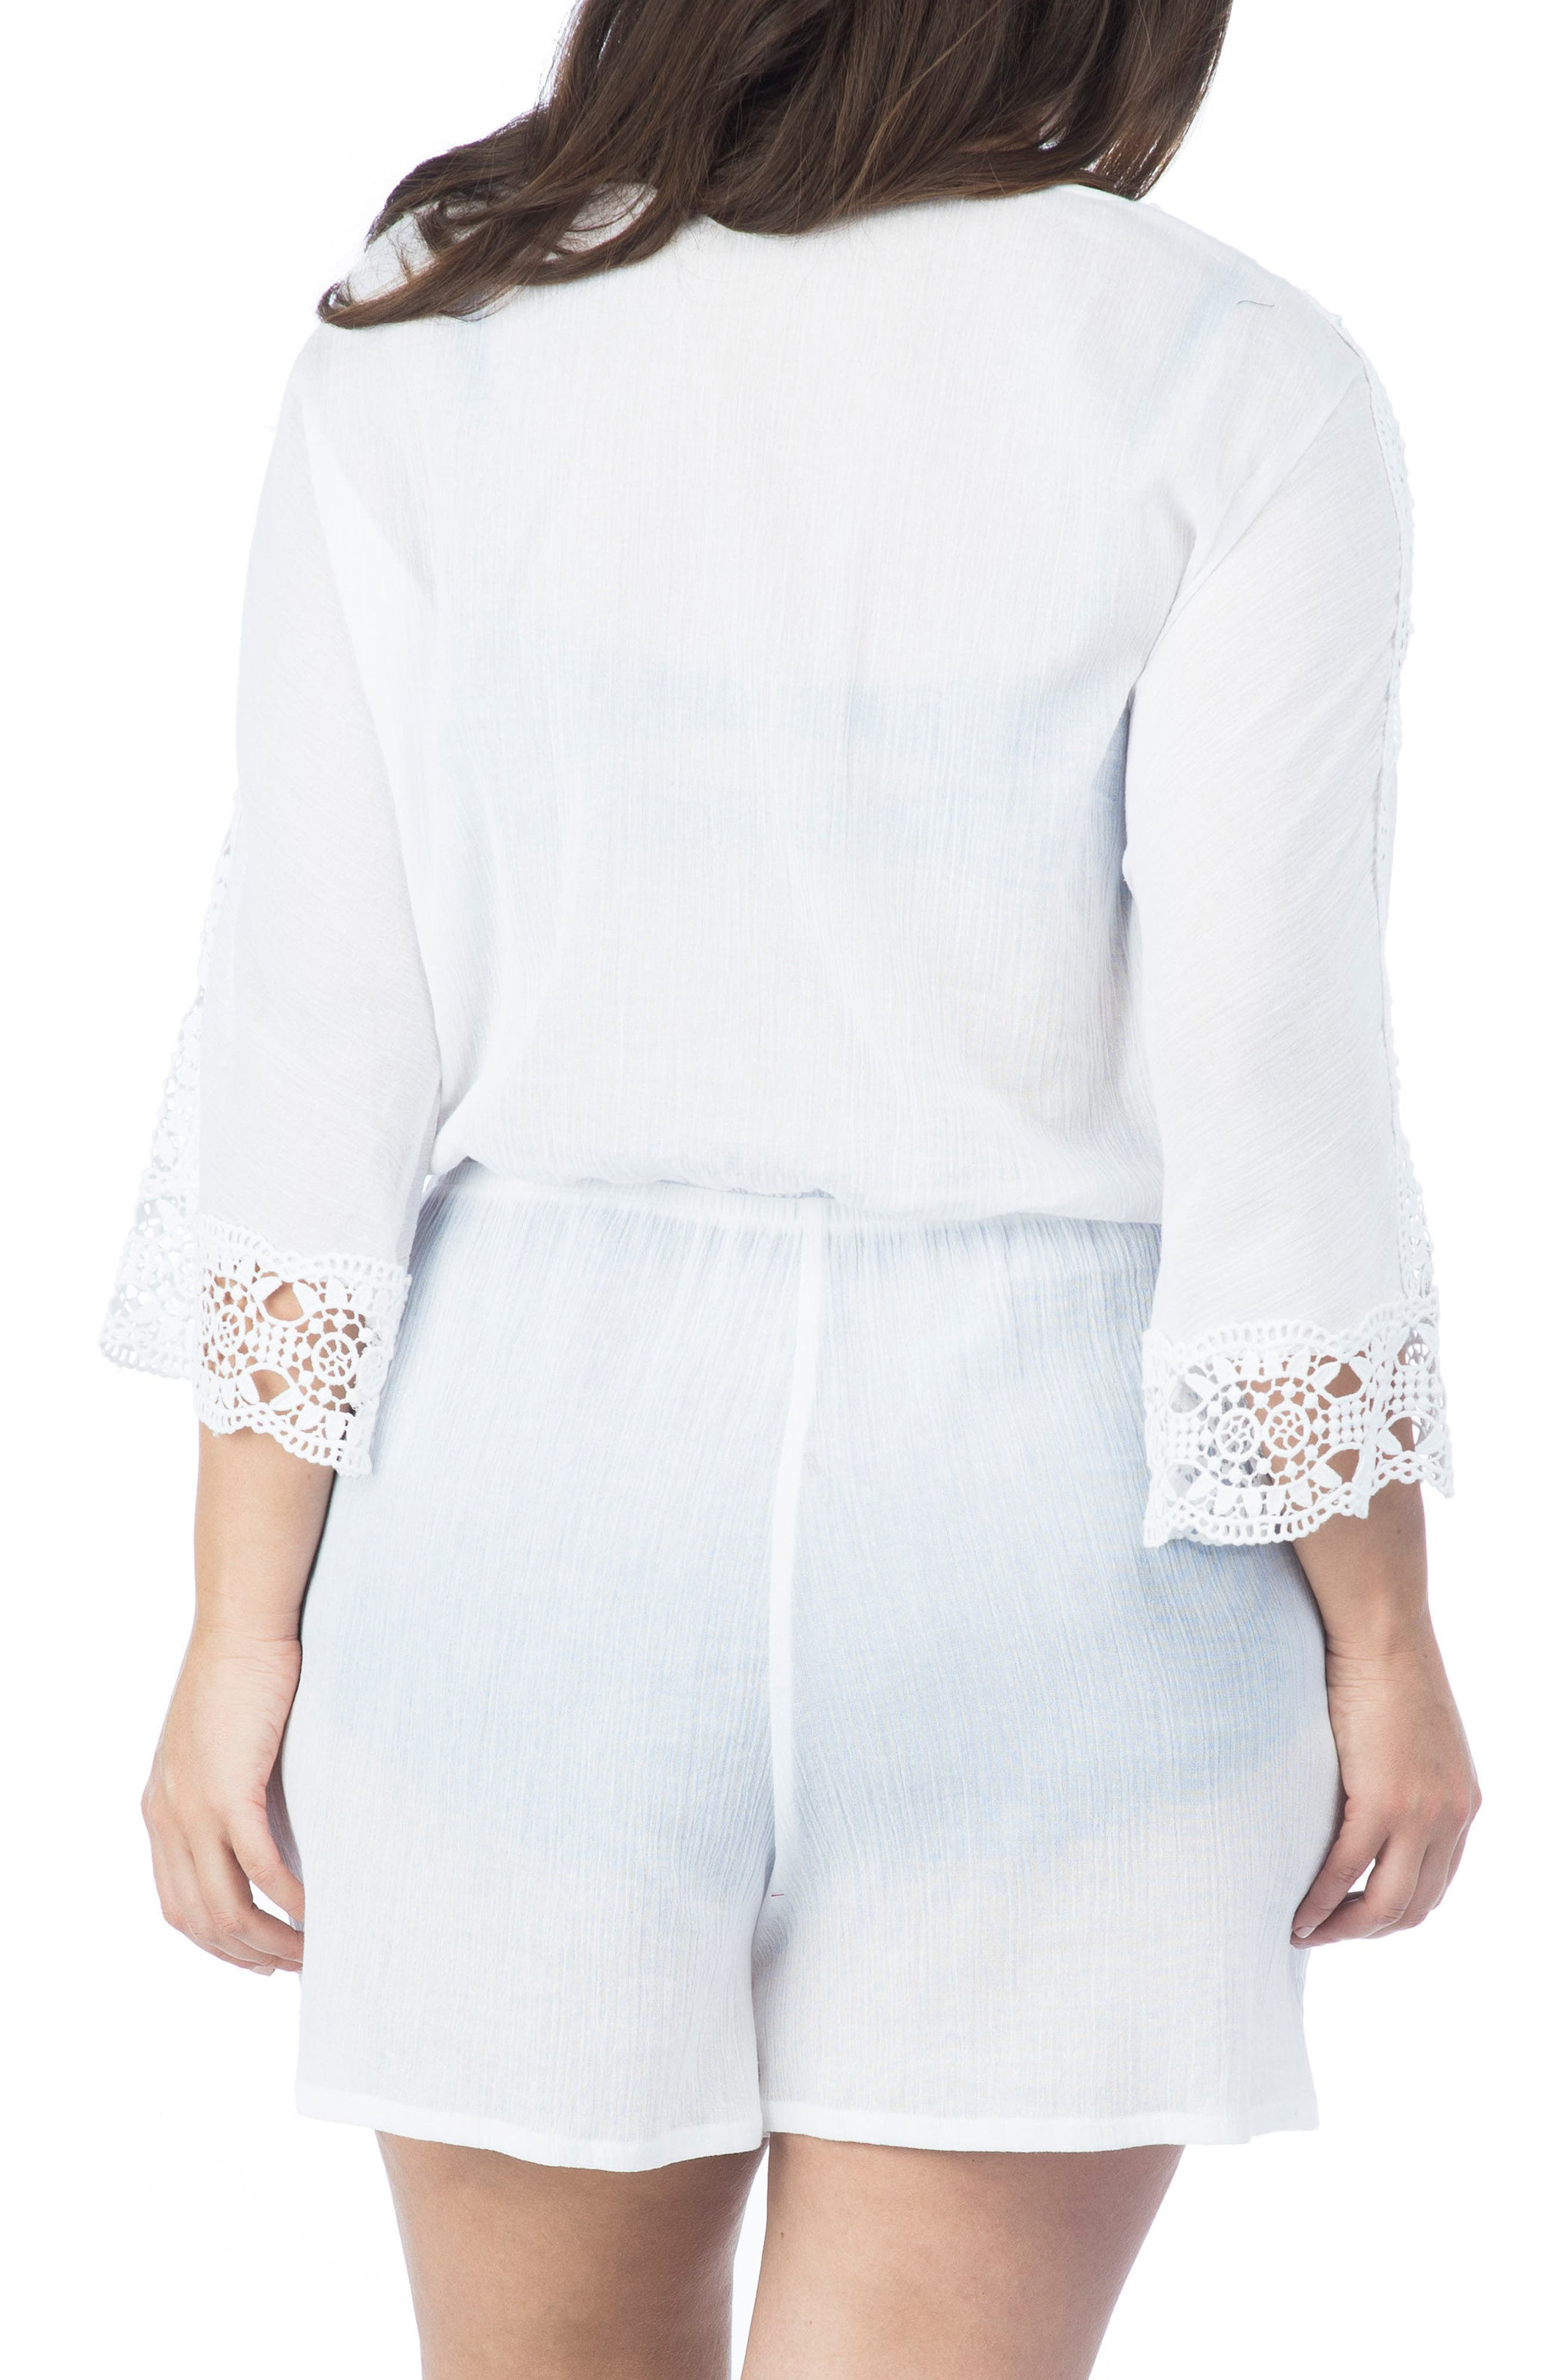 Island Fare Romper,                             Alternate thumbnail 2, color,                             White